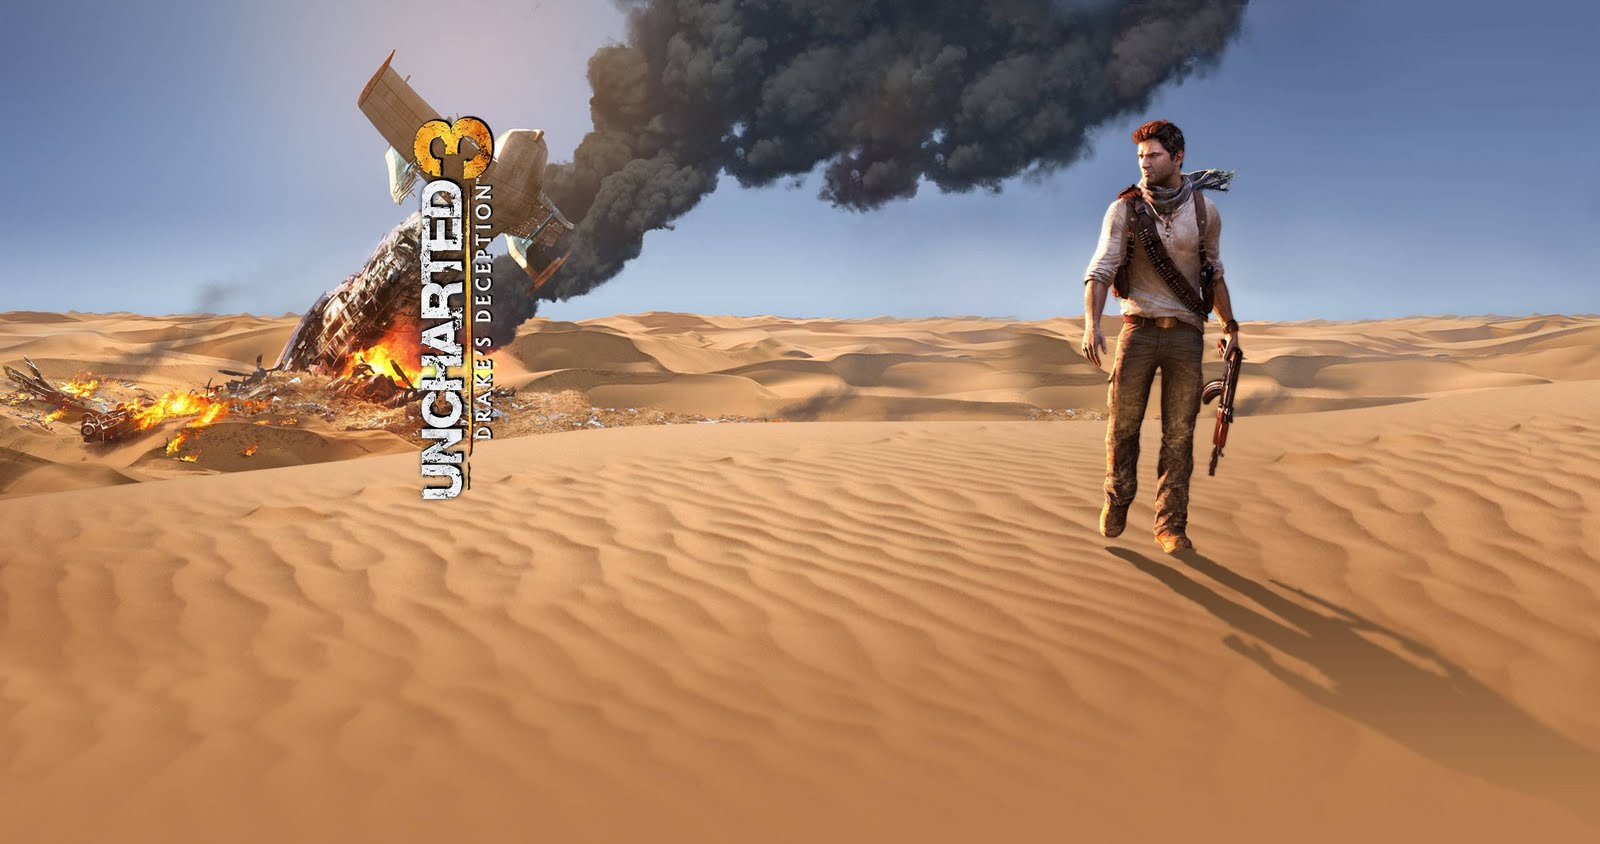 All New Pix1 Wallpaper Uncharted 3 Hd